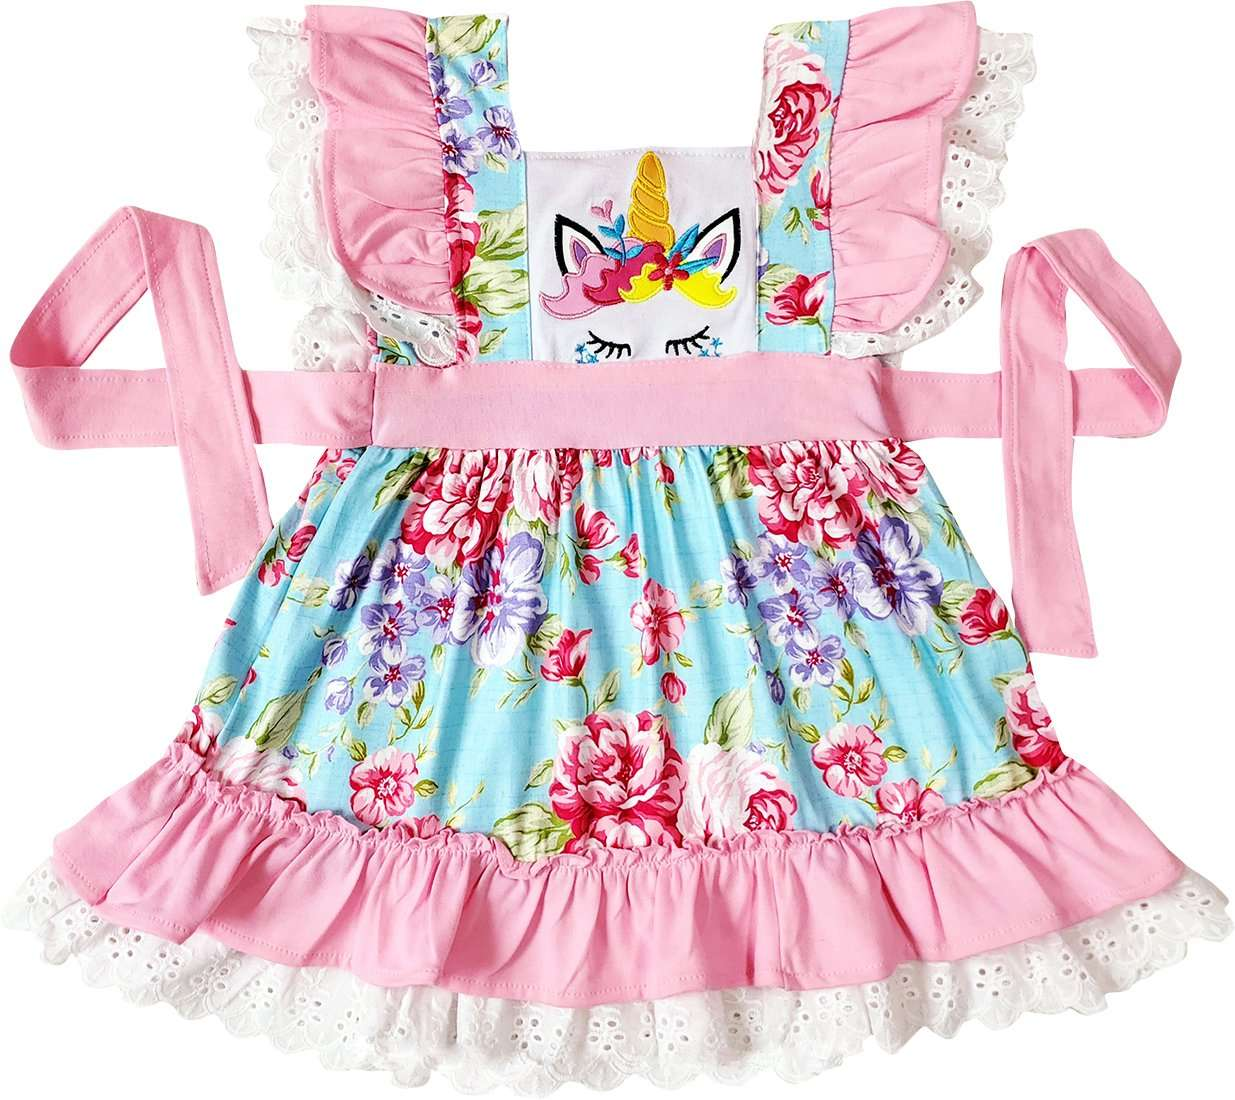 Angeline Kids:Baby Little Girls Boutique Floral Unicorn Ruffle Dress Legging Set